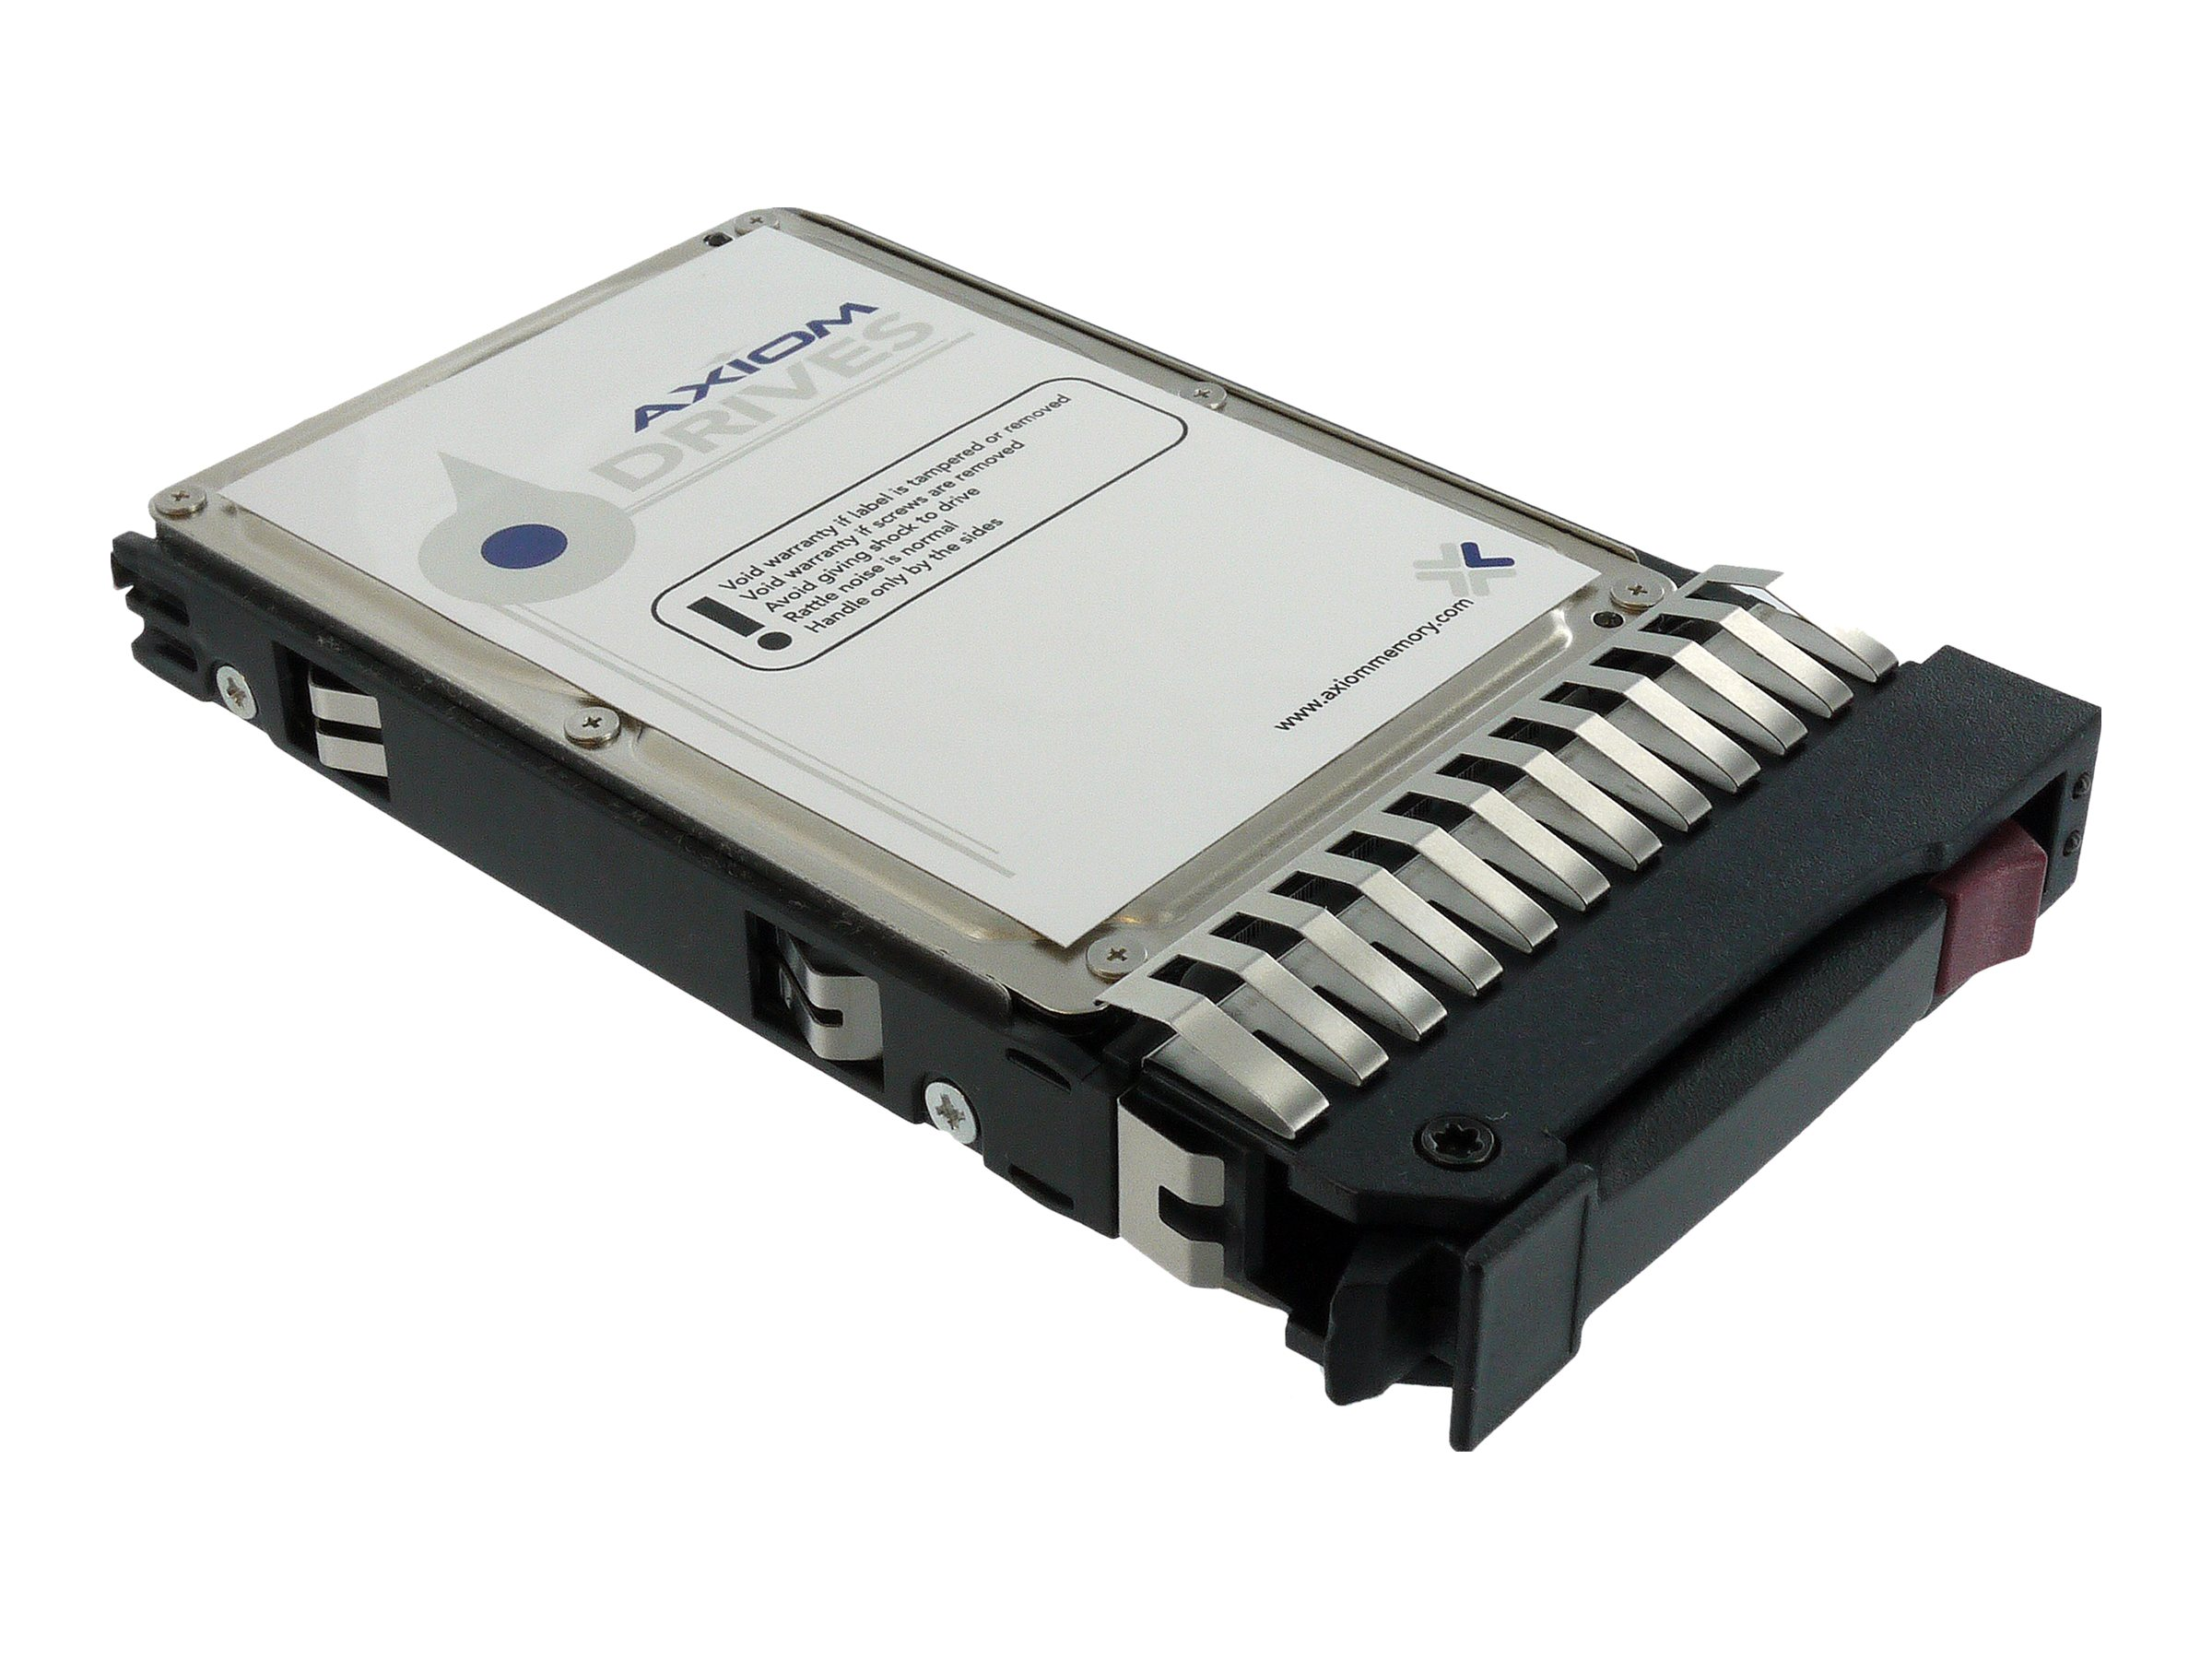 Axiom 1.2TB SAS 6Gb s 10K RPM SFF 2.5 Enterprise Hot Swap Hard Drive Kit for Select HP Compaq Units, 693648-B21-AX, 16733217, Hard Drives - Internal